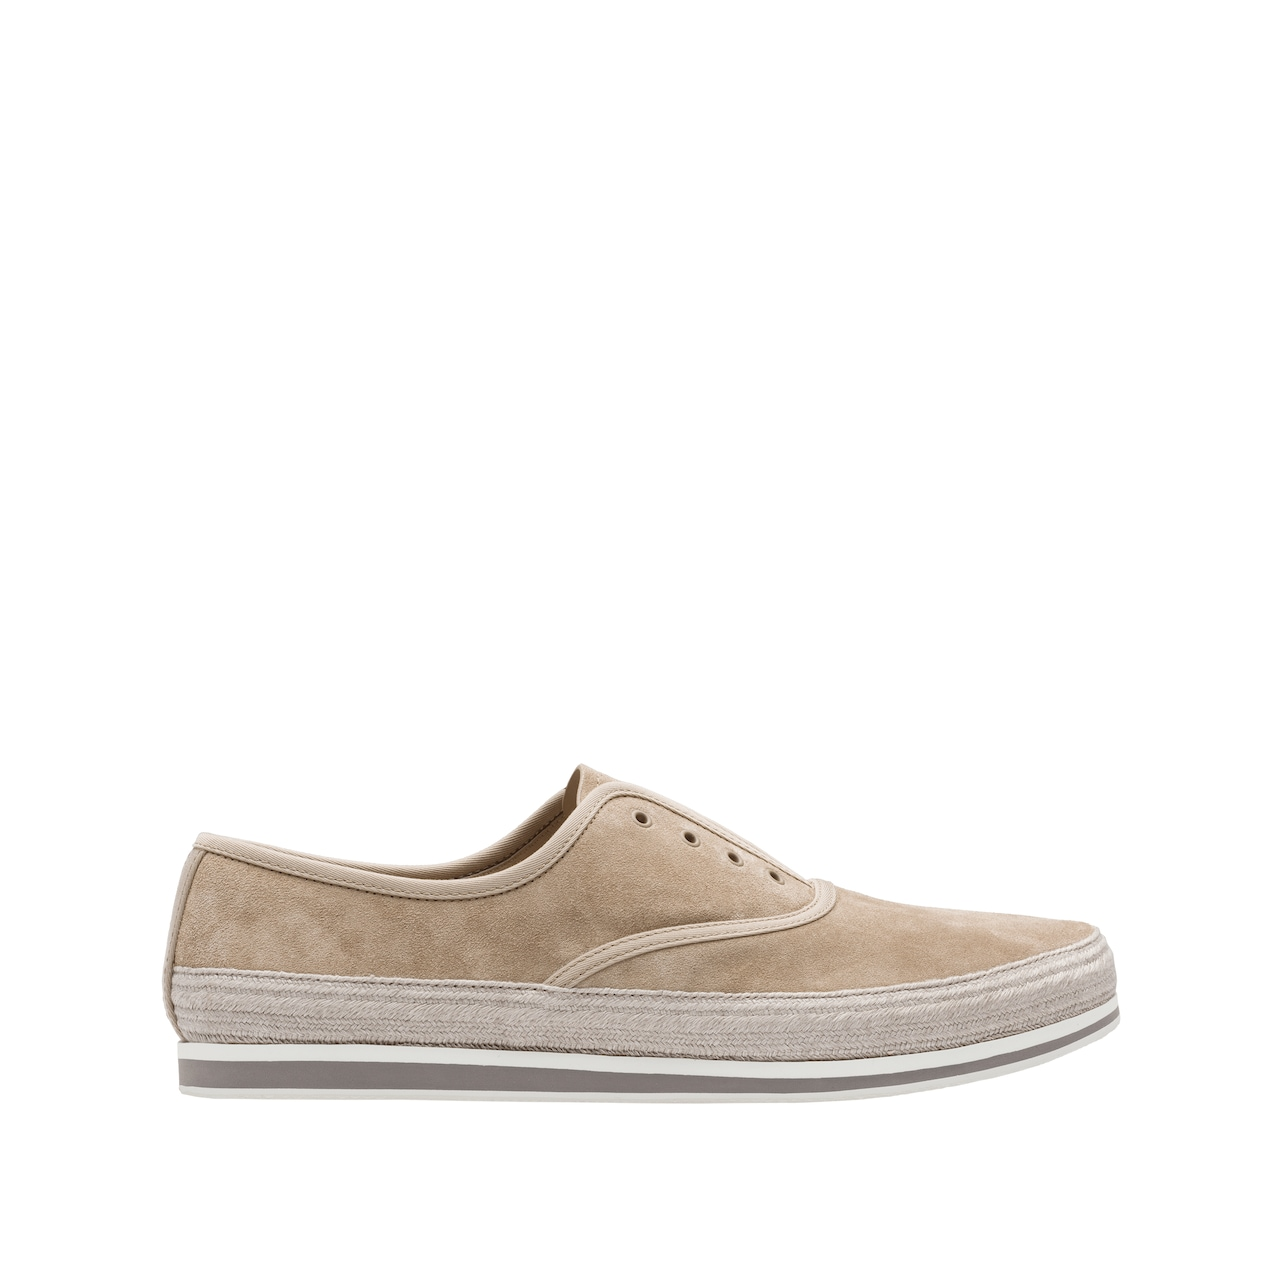 Suede slip-on shoes